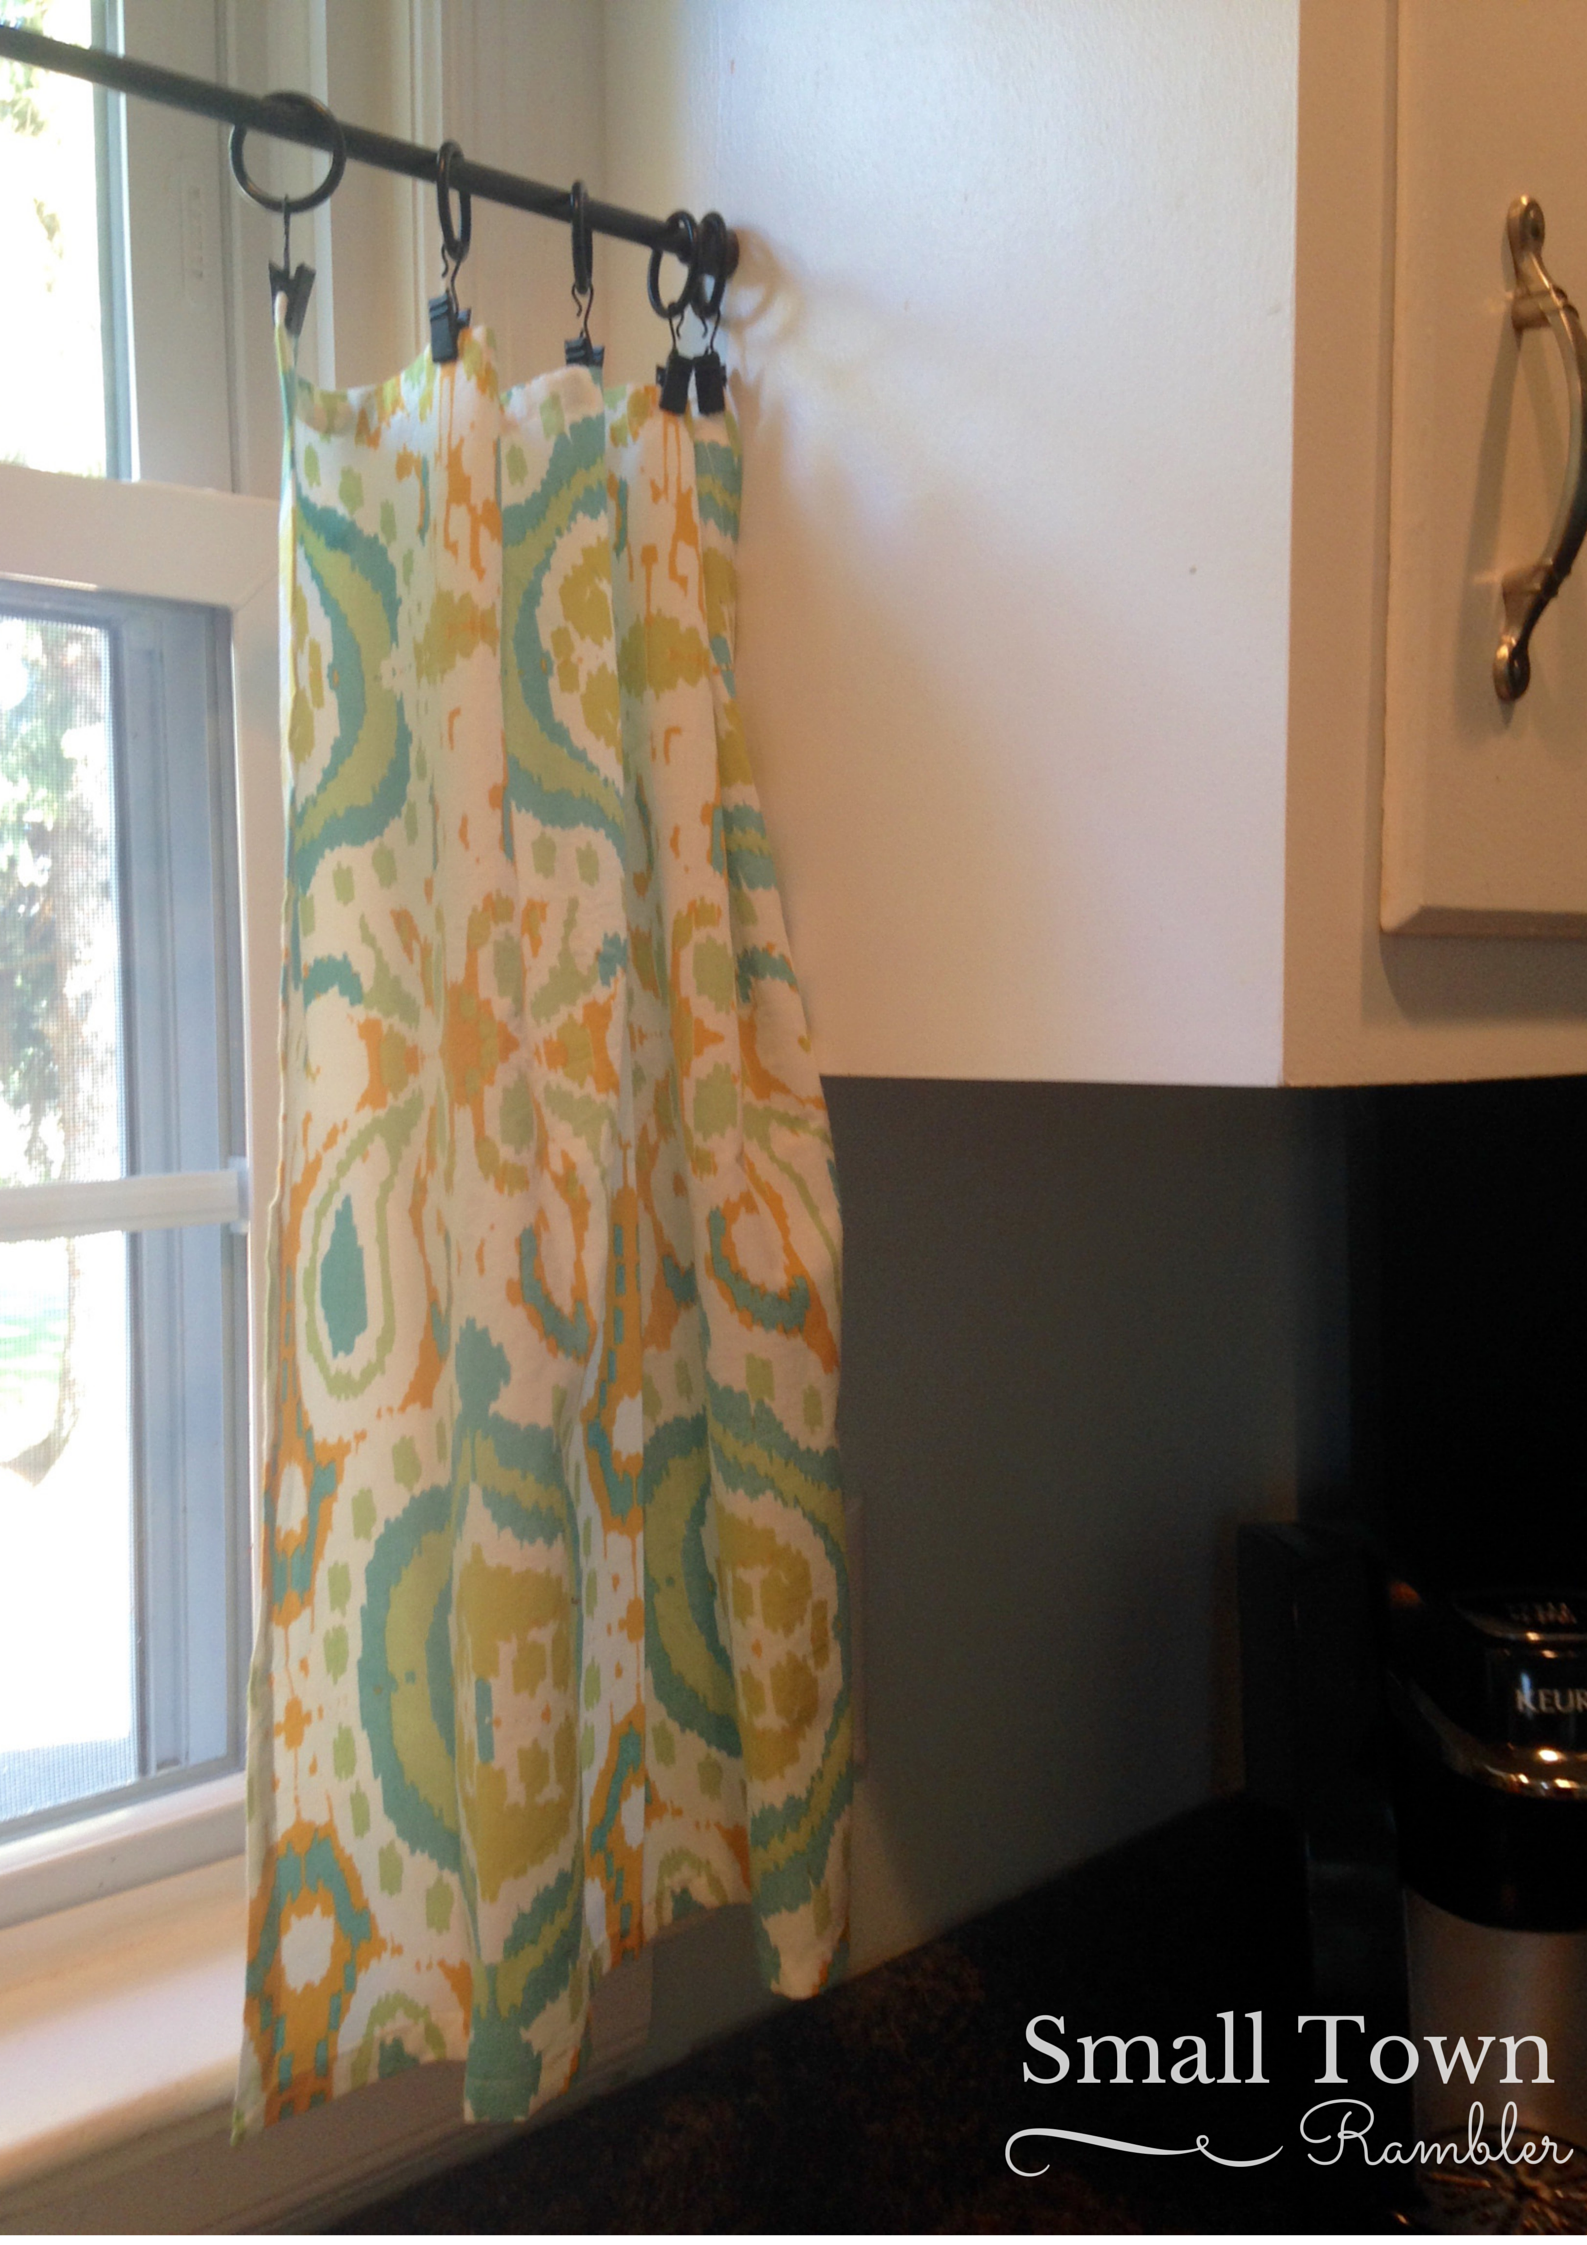 Napkins From World Market Added To Curtain Clips And Tension Rod For Cafe Curtains In Kitchen Window